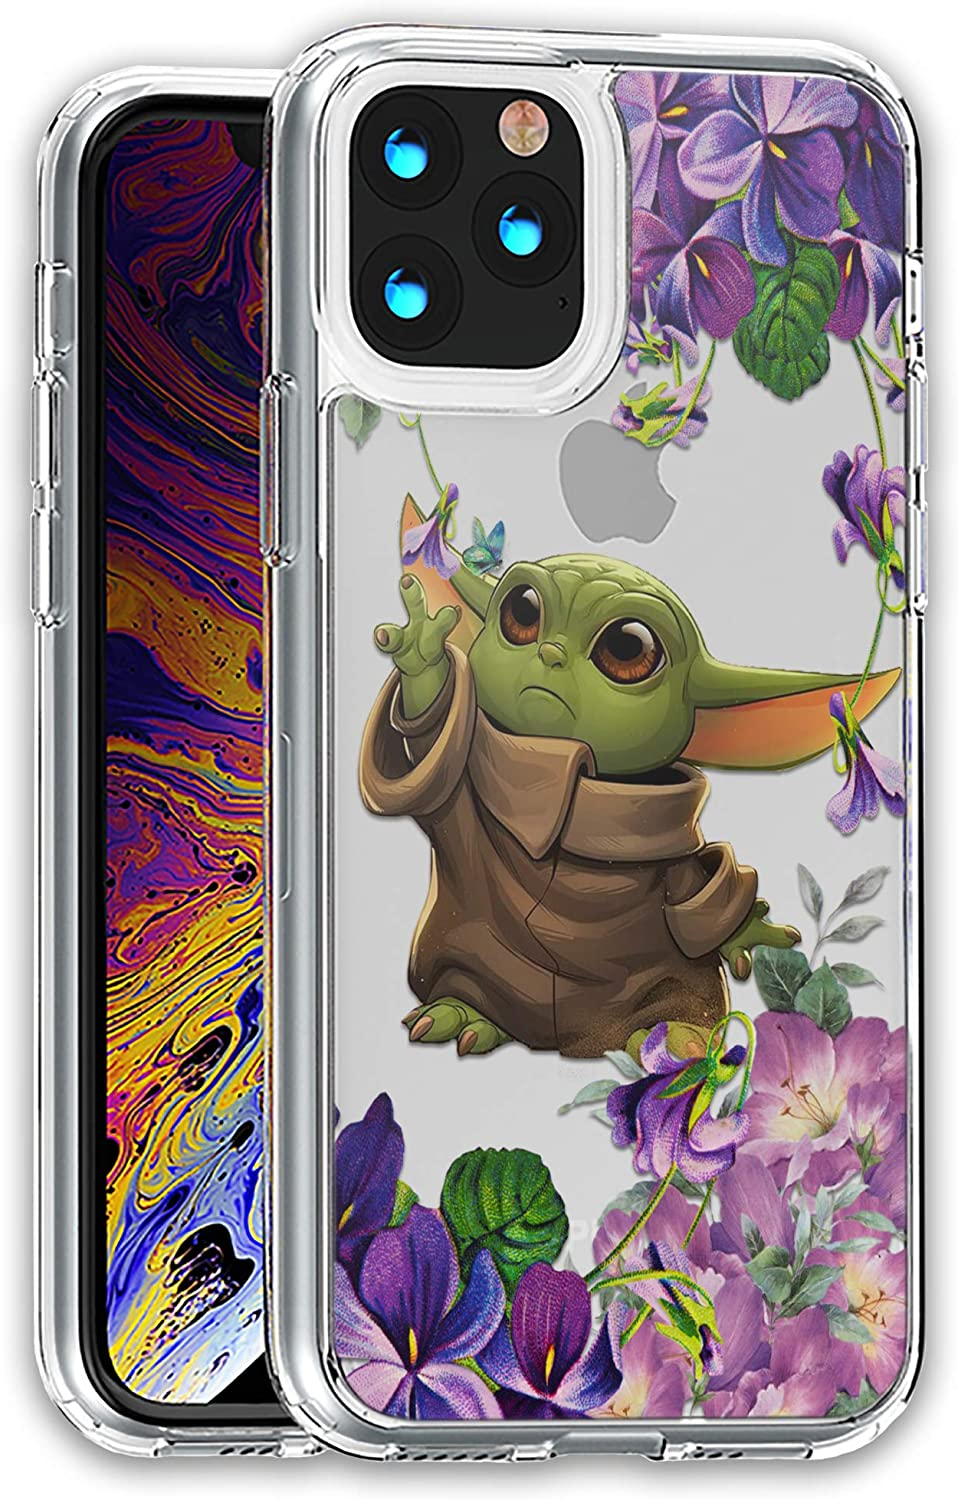 The Child Star Clear case Compatible with iPhone 12 Pro max Mini 11 Xr X 7 8 Plus SE Compatible with Galaxy s20 S20+ Ultra and Others Silicone Hybrid Cover SN 05 Wars (for Galaxy s8 Plus)